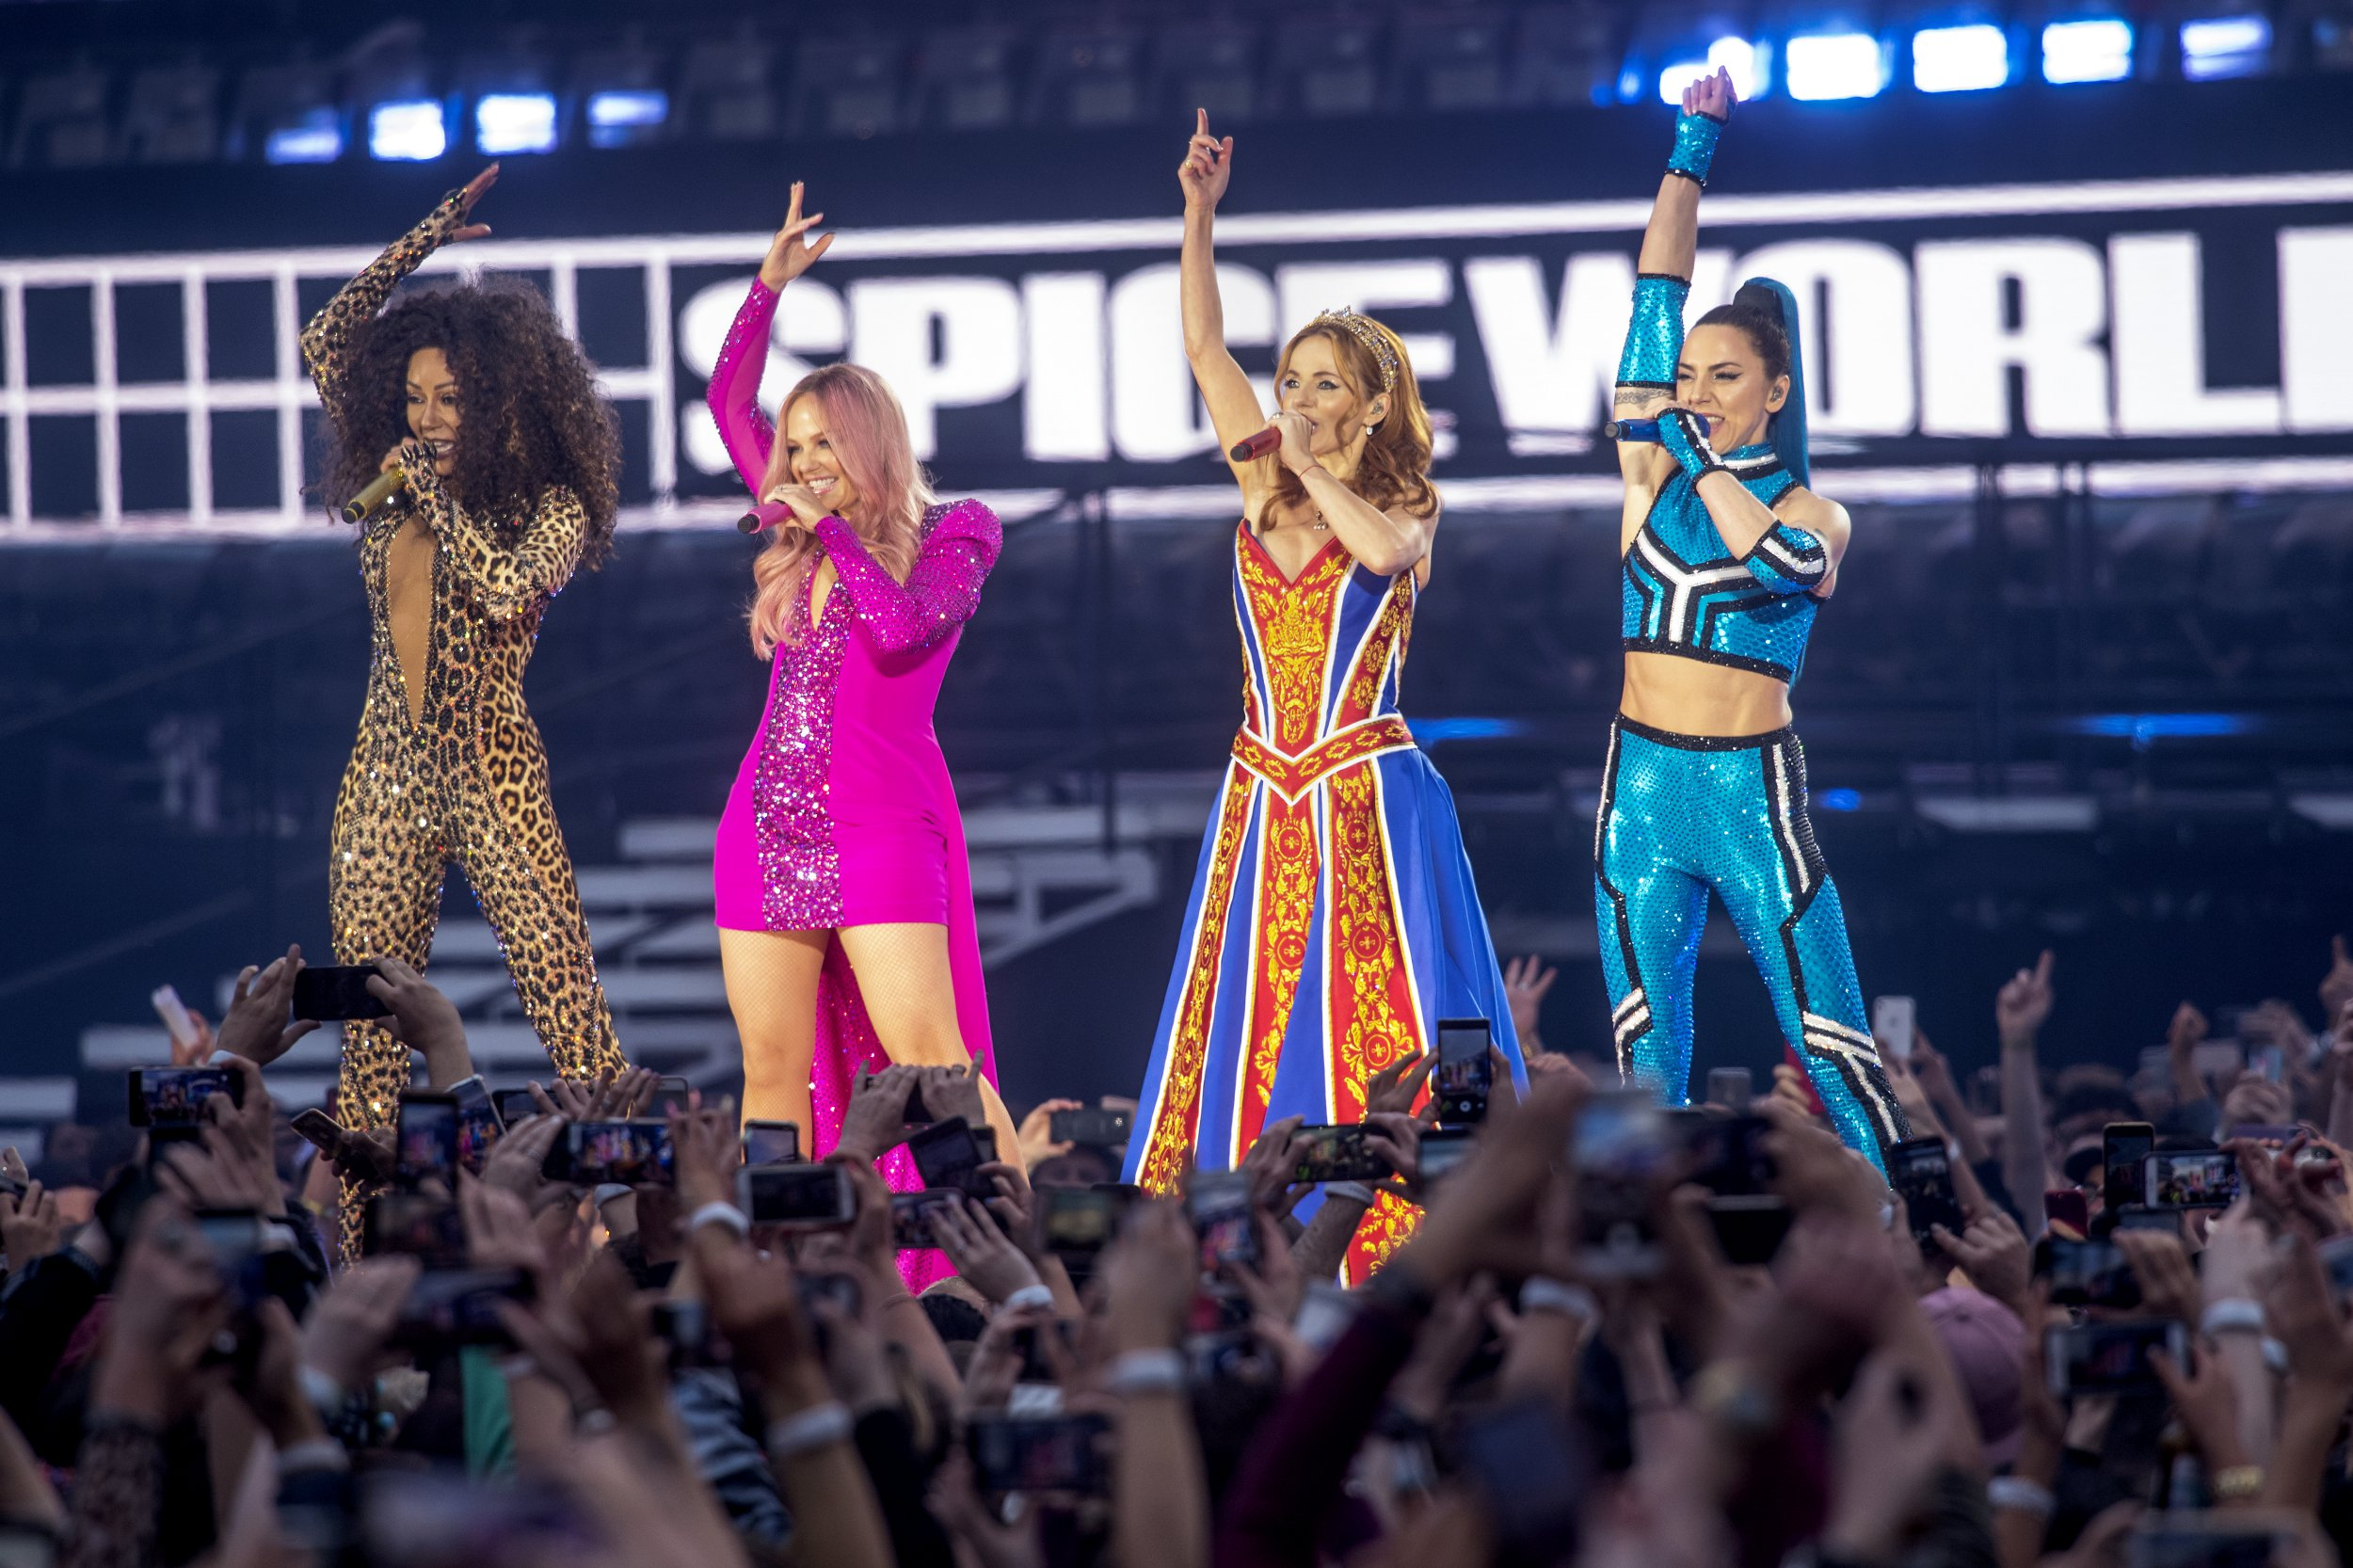 Spice Girls treat themselves to tequila shots and ice baths after kicking off comeback tour